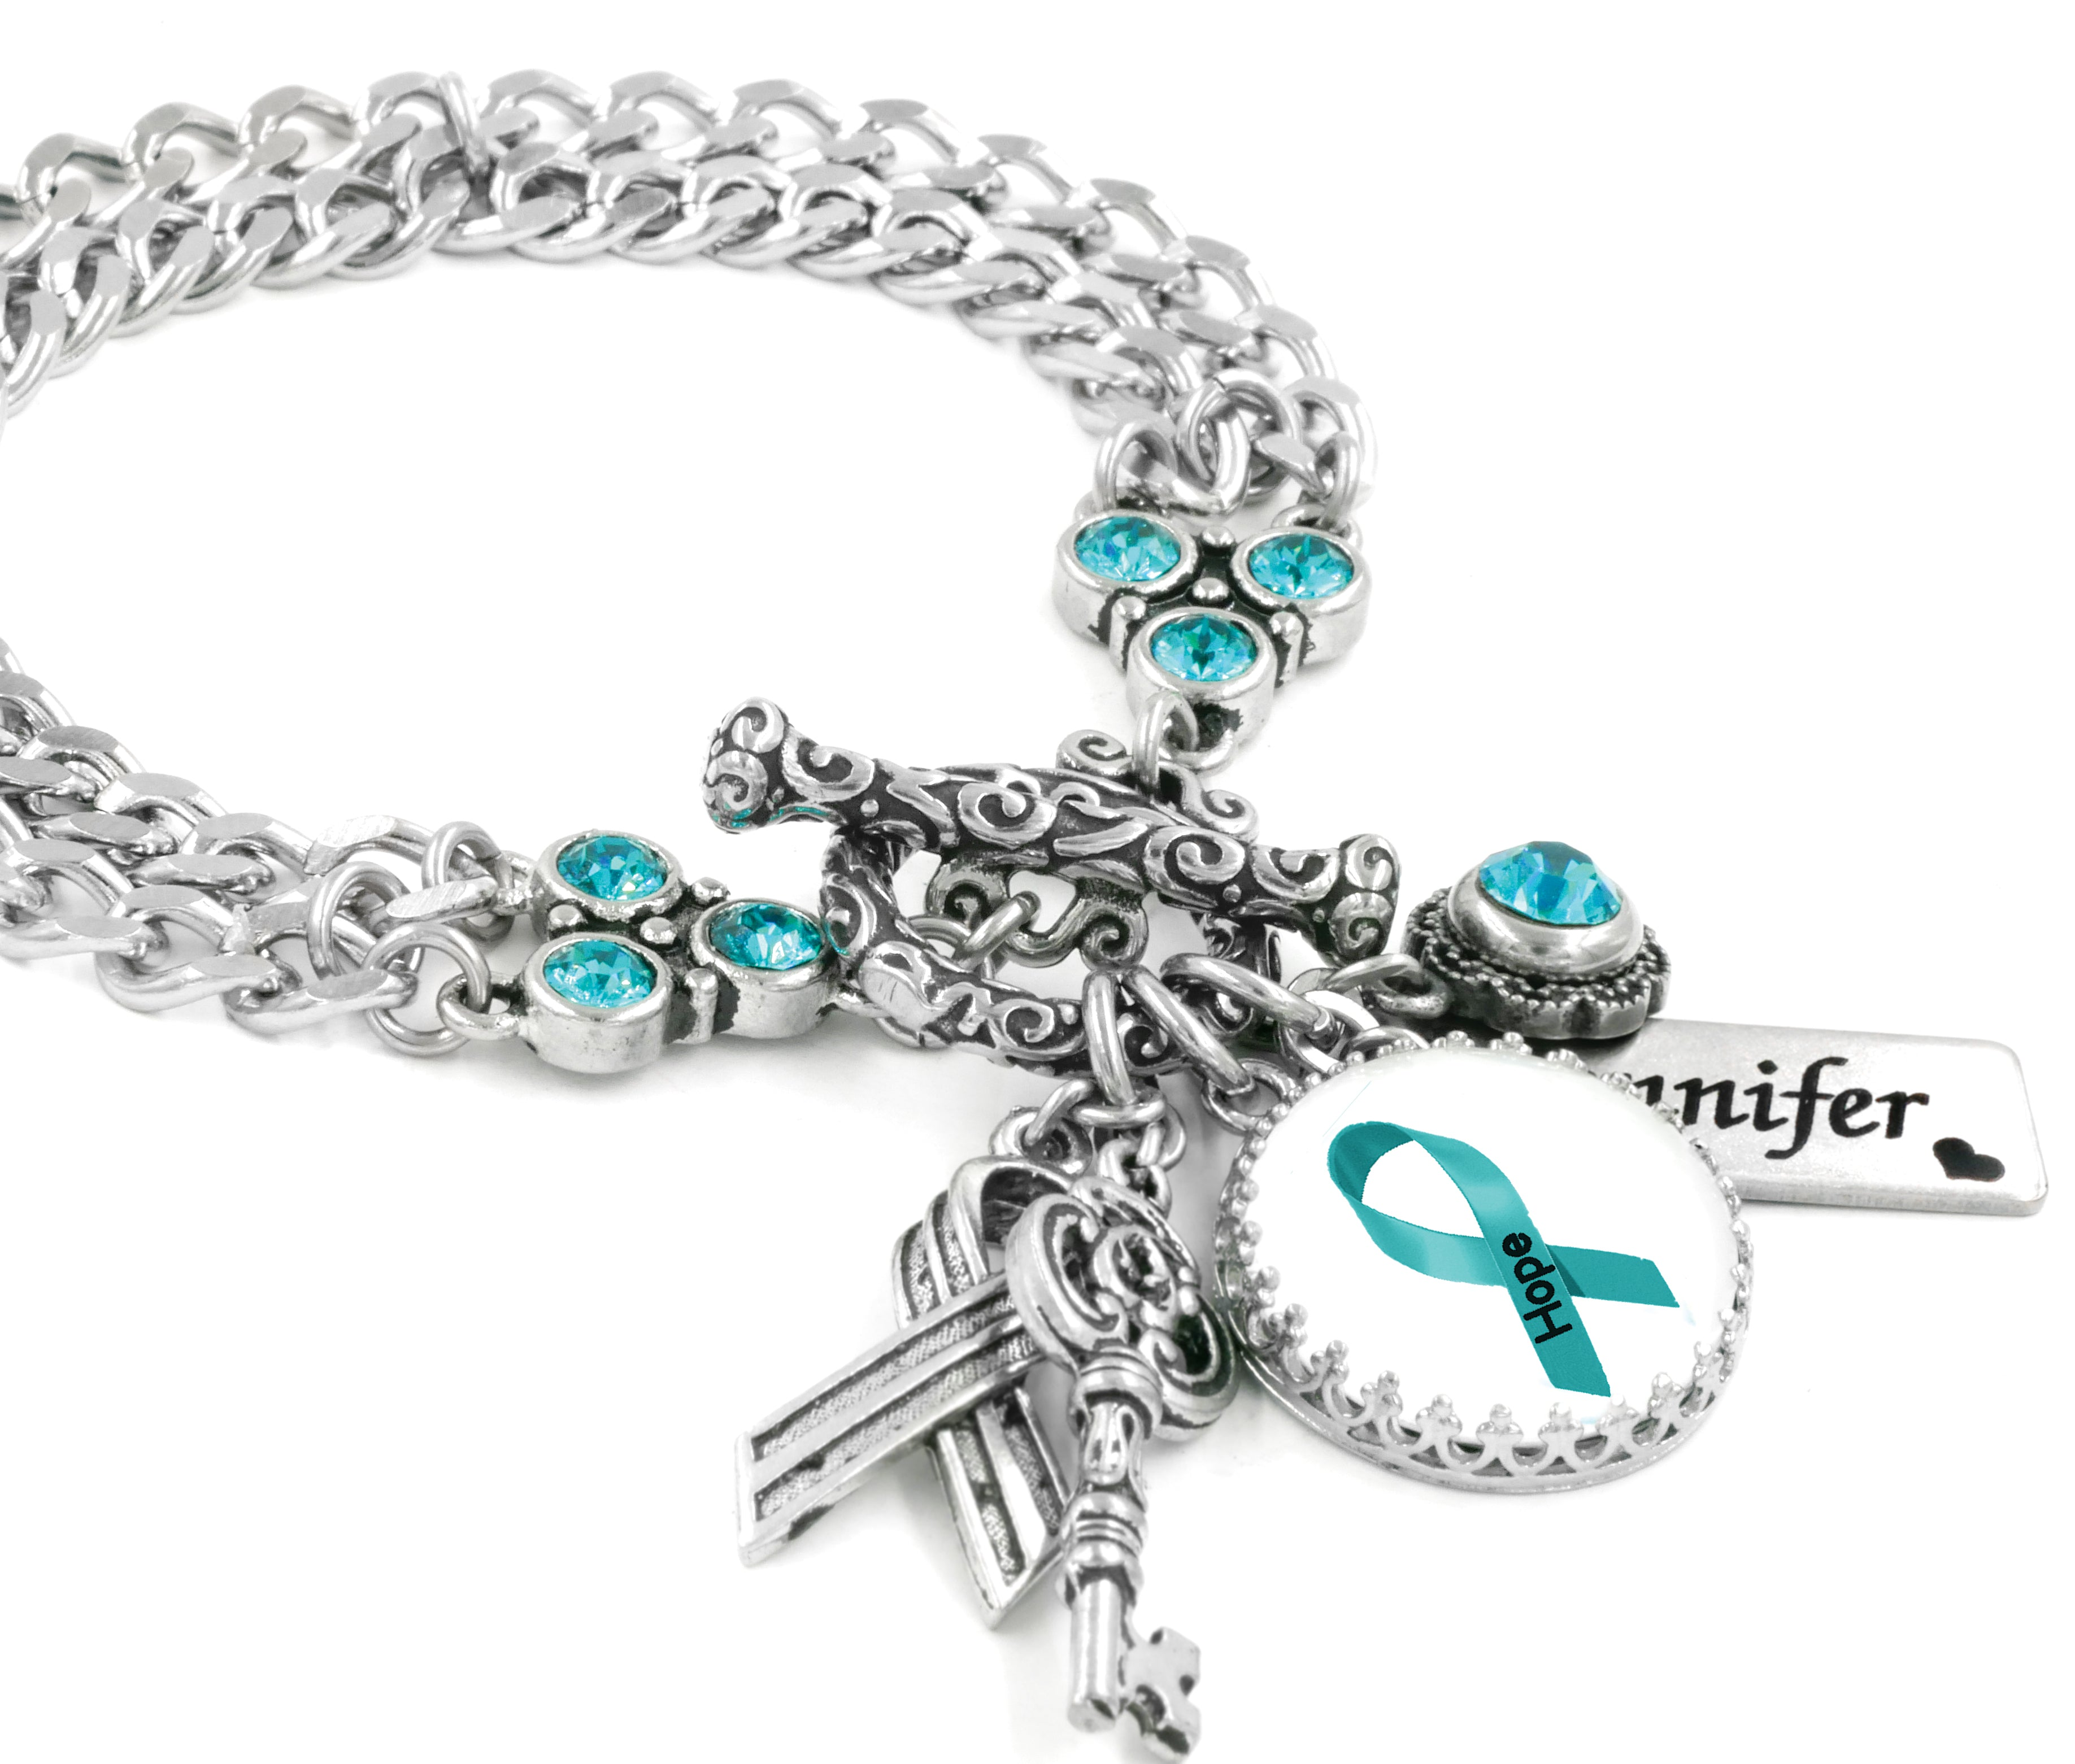 Ovarian Awareness Jewelry With Teal Ribbon And Personalized Name Blackberry Designs Jewelry